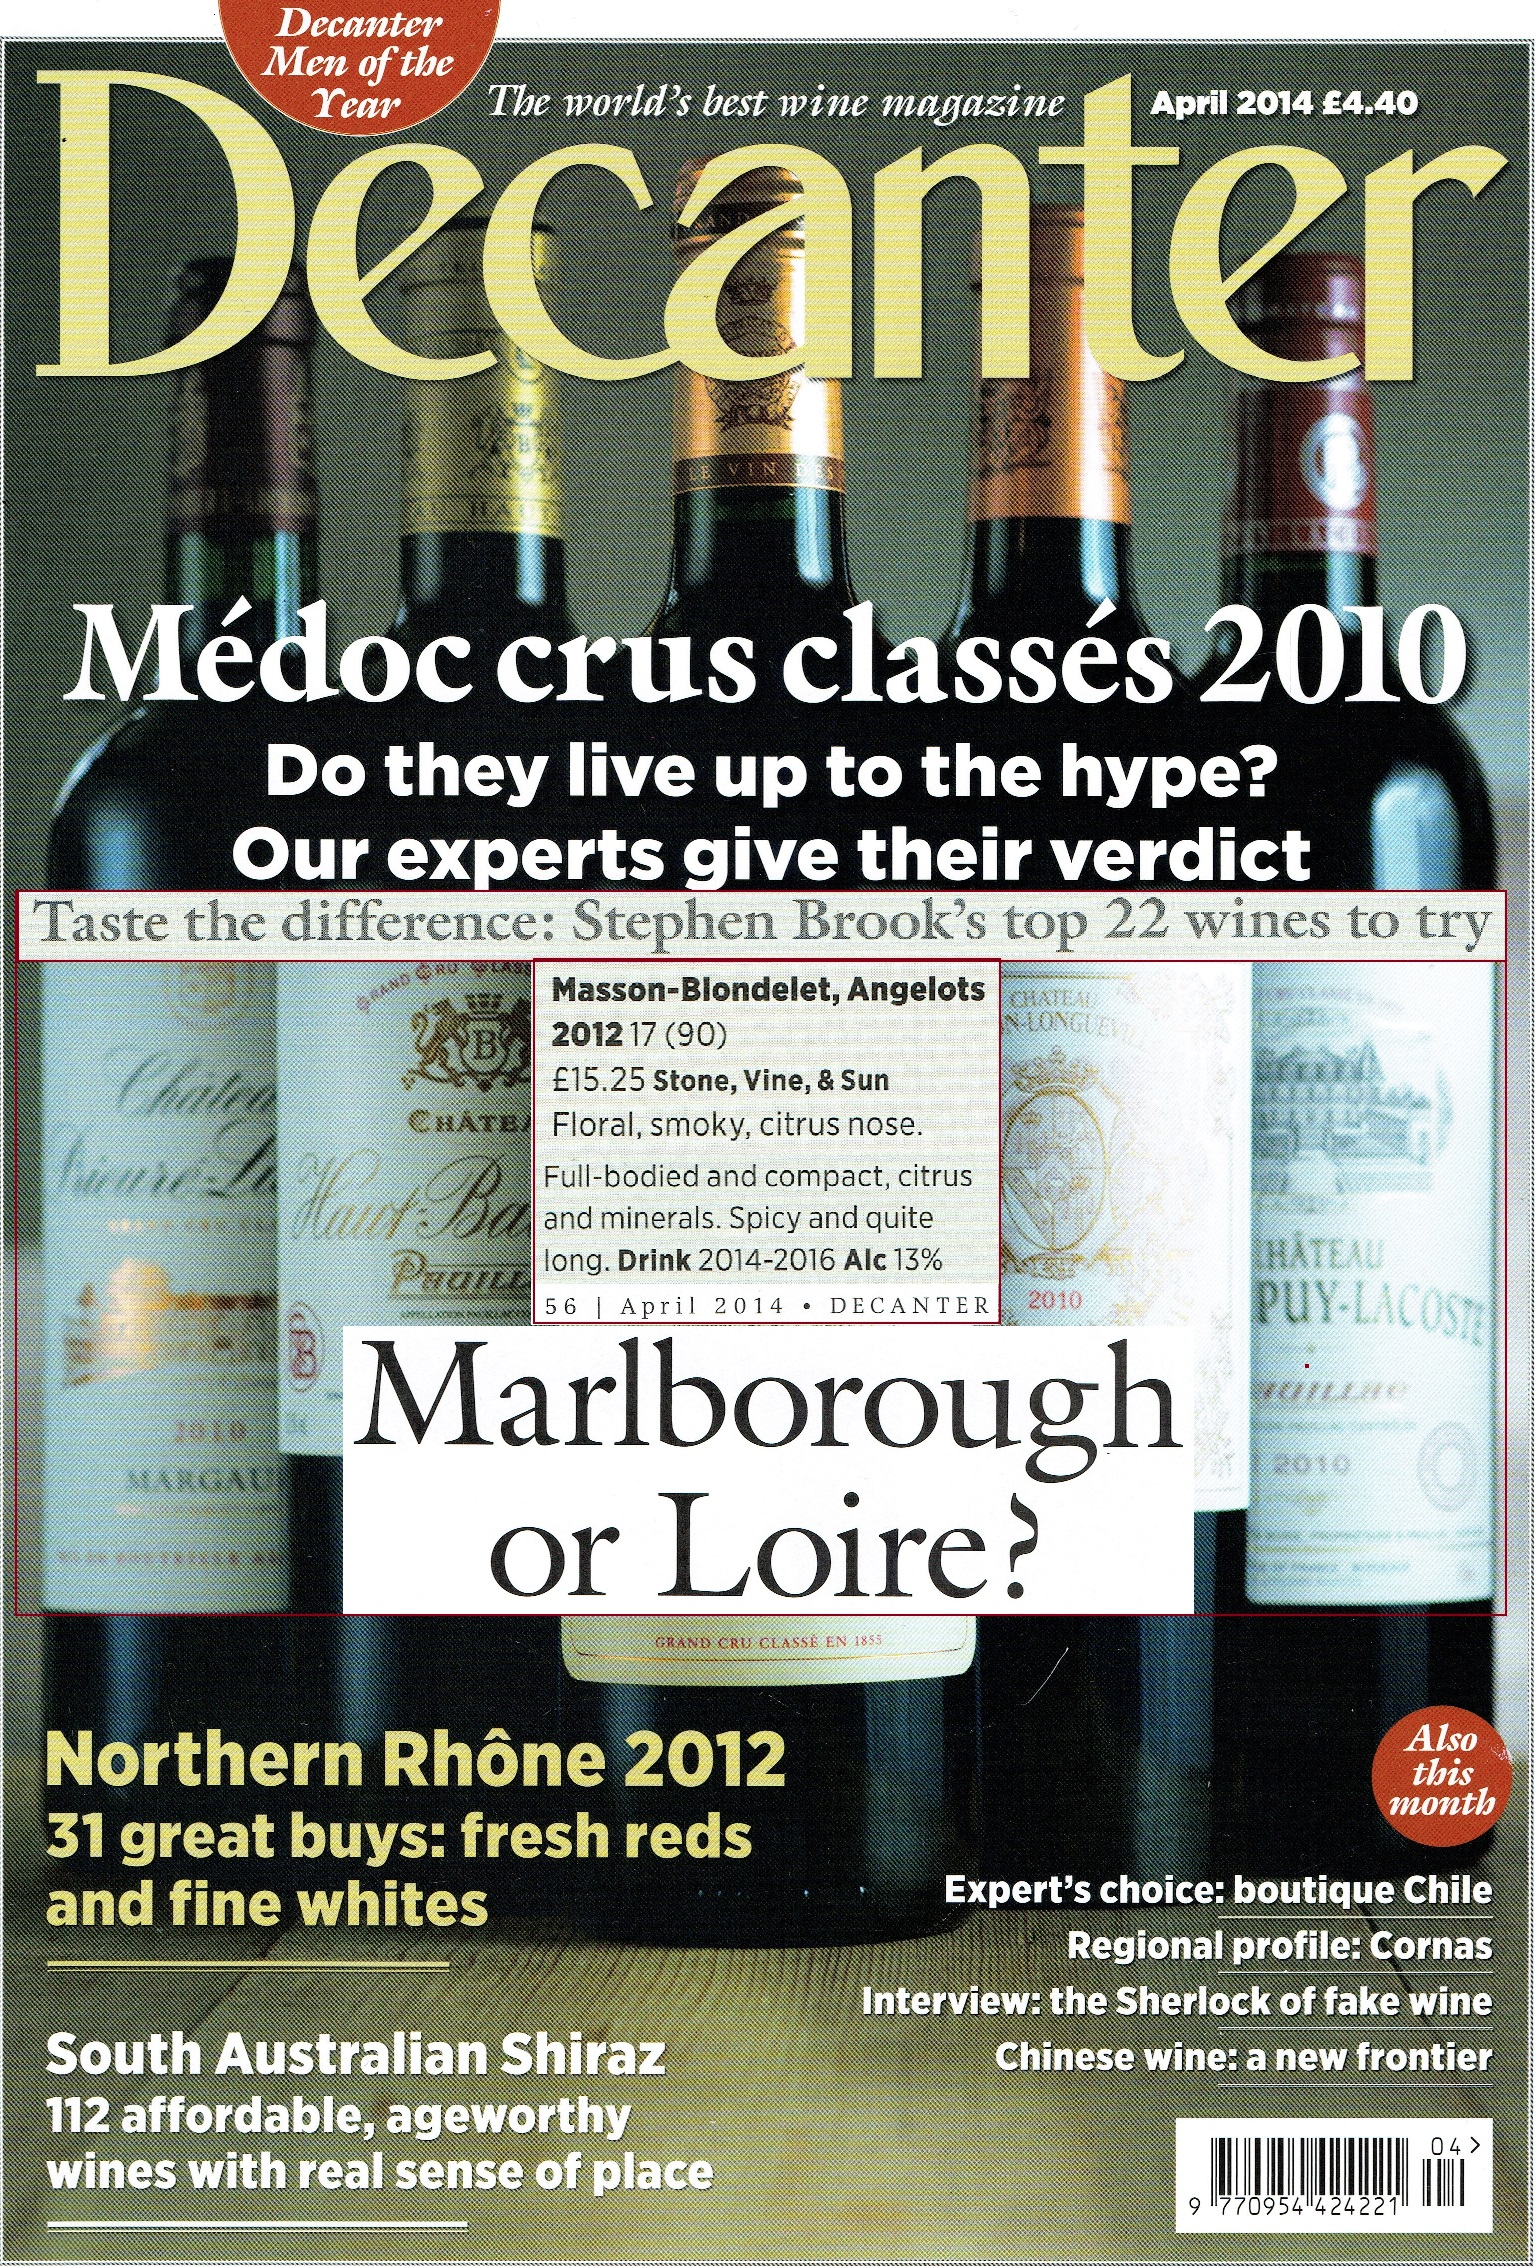 DECANTER 04.2014 Masson-Blondelet